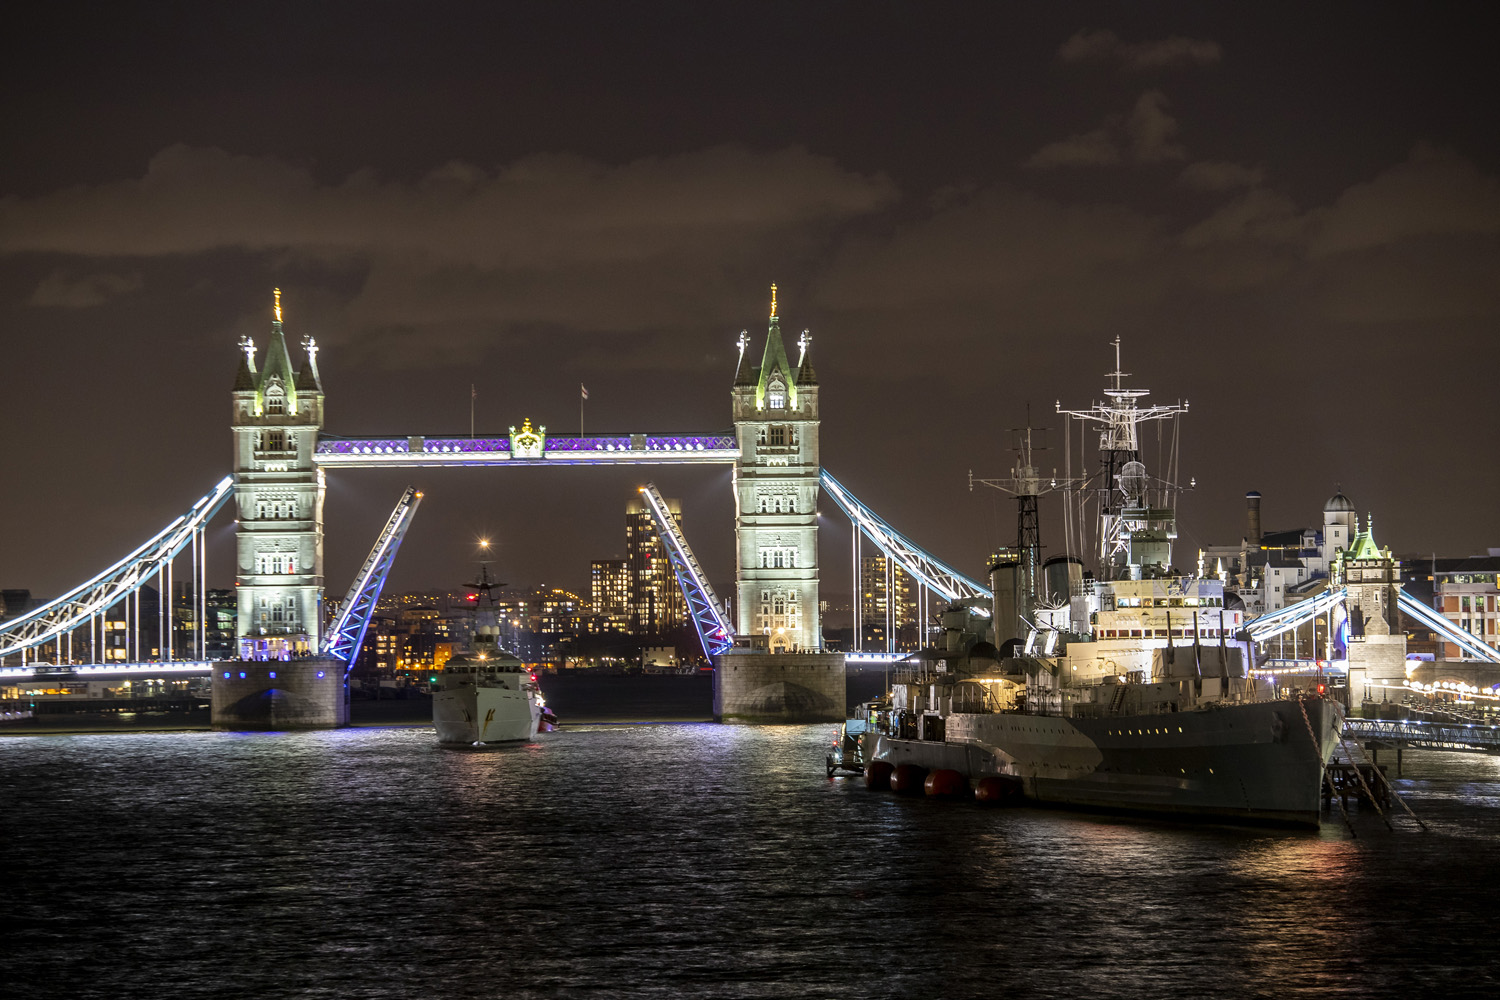 HMS Tyne sailing under the iconic Tower Bridge in London to moor alongside the equally iconic WWII Cruiser HMS Belfast.